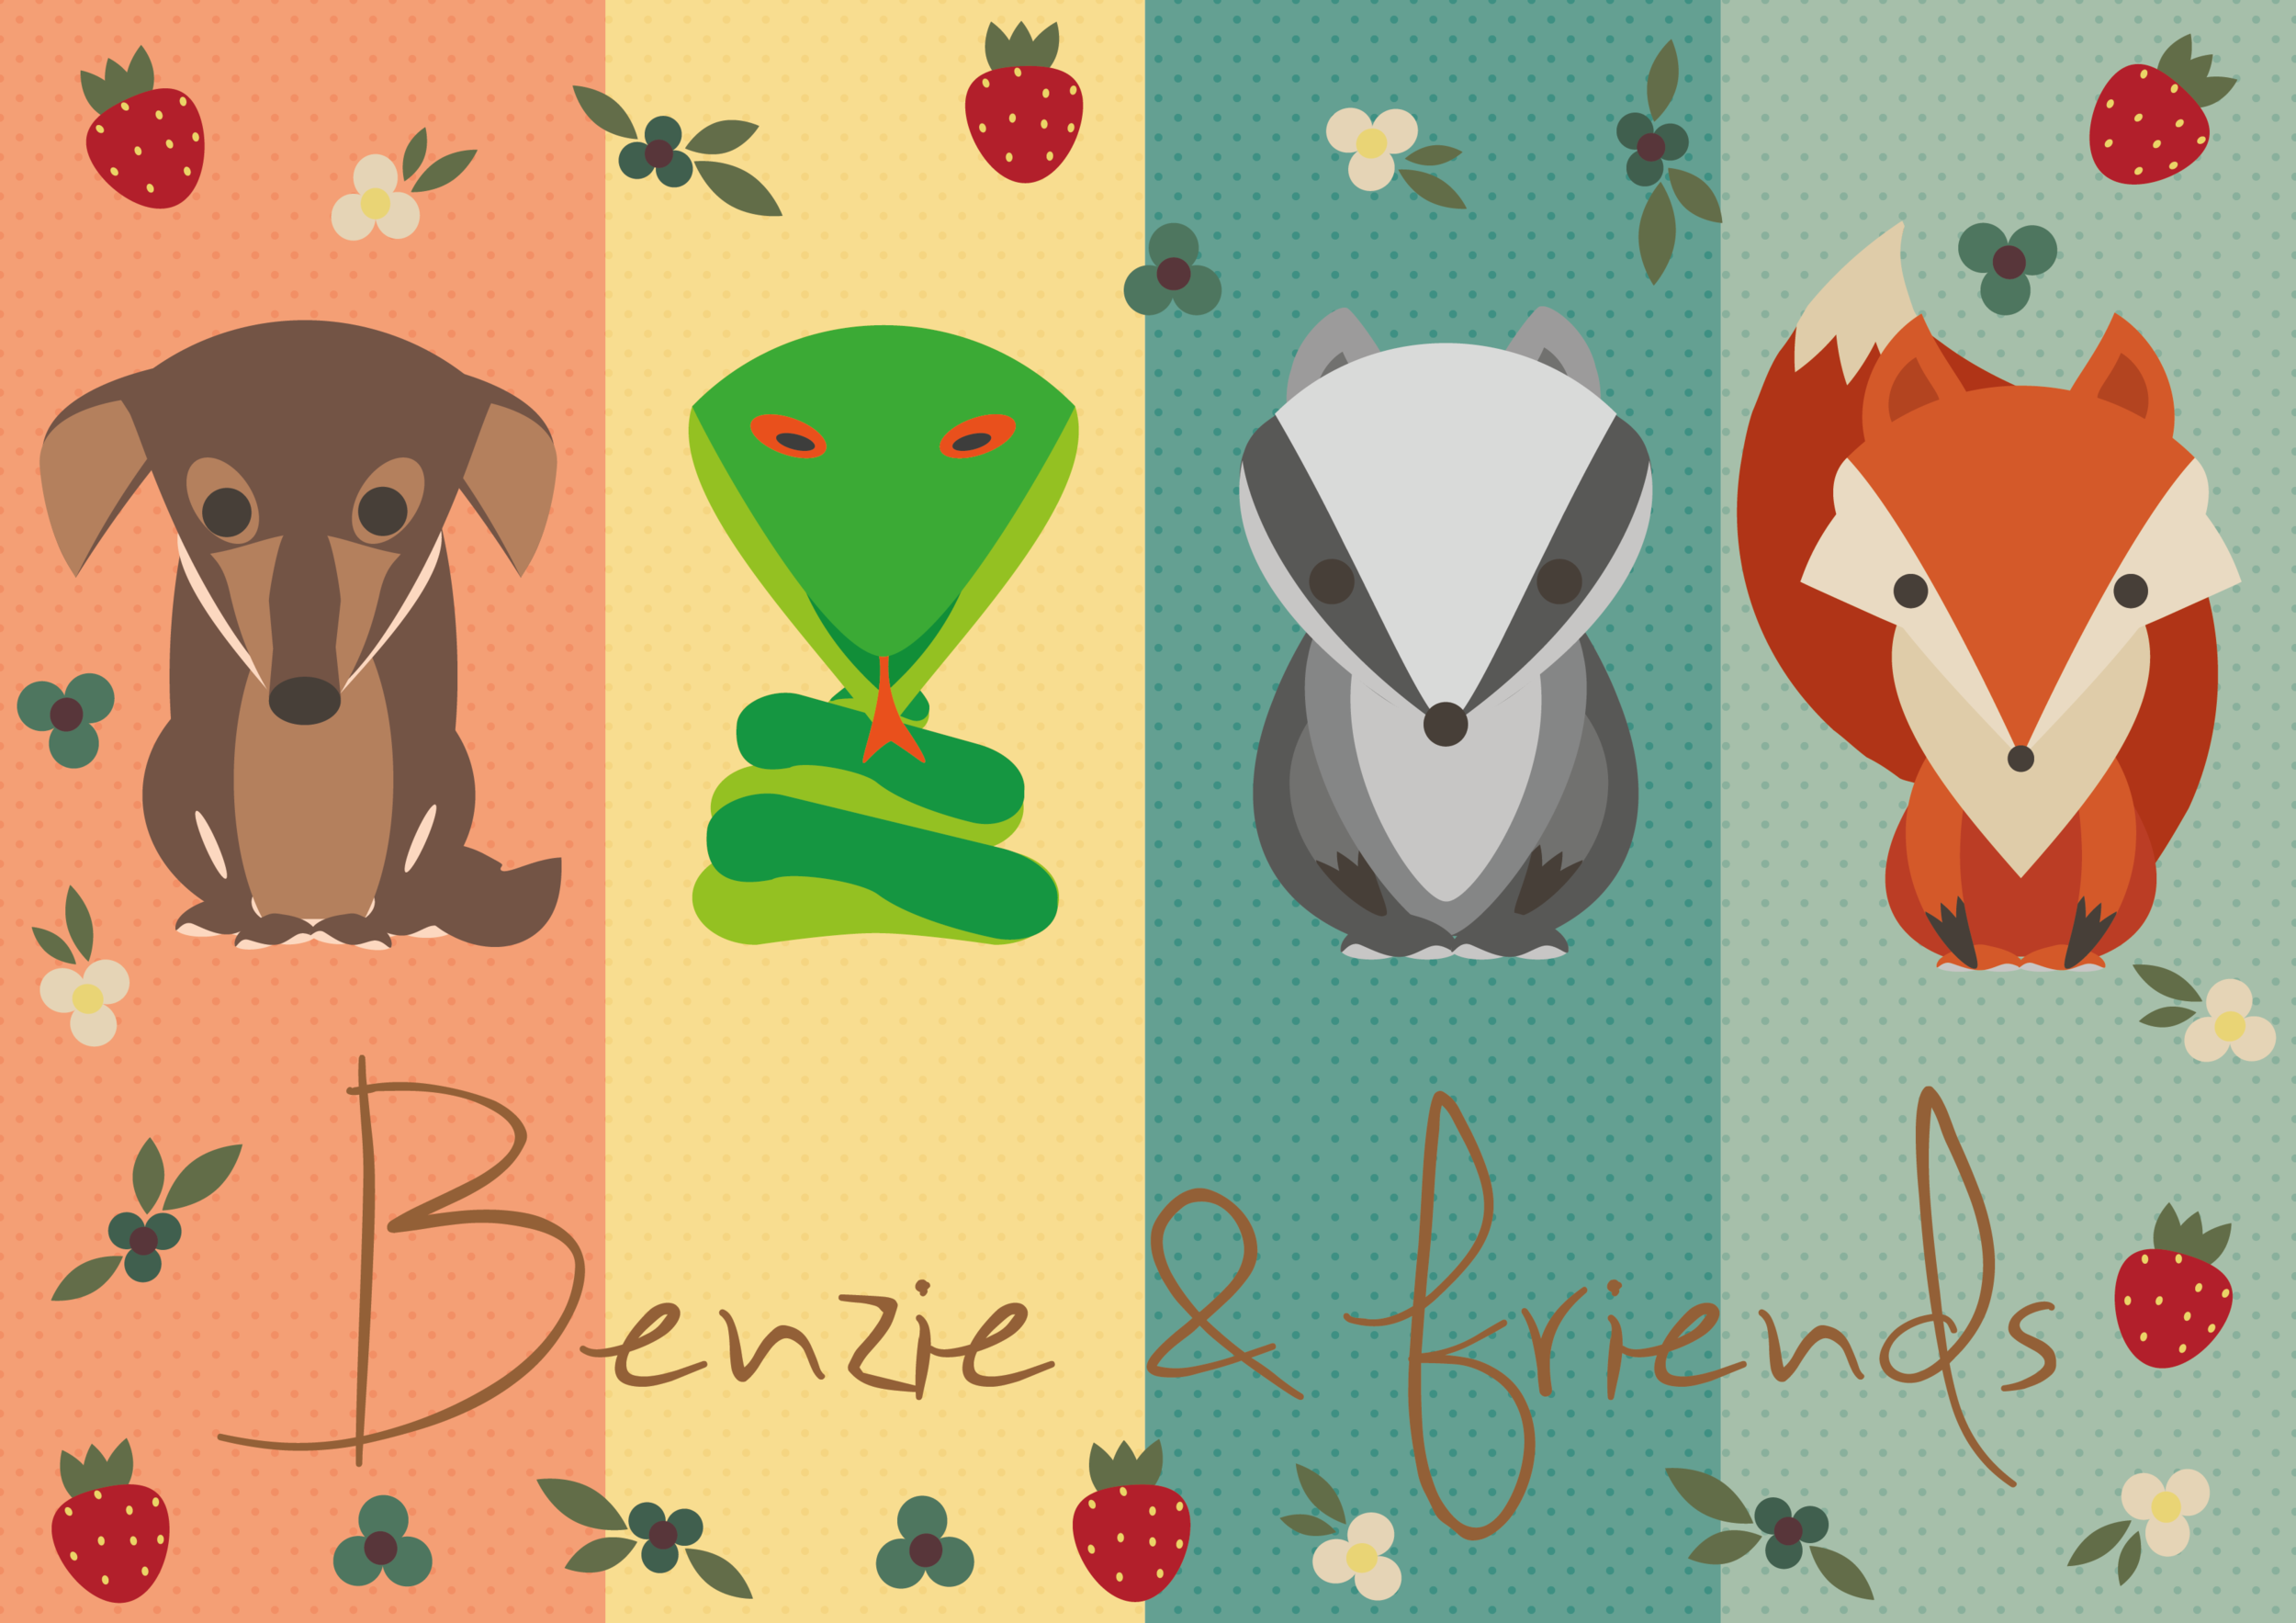 benzie and friends-01.png